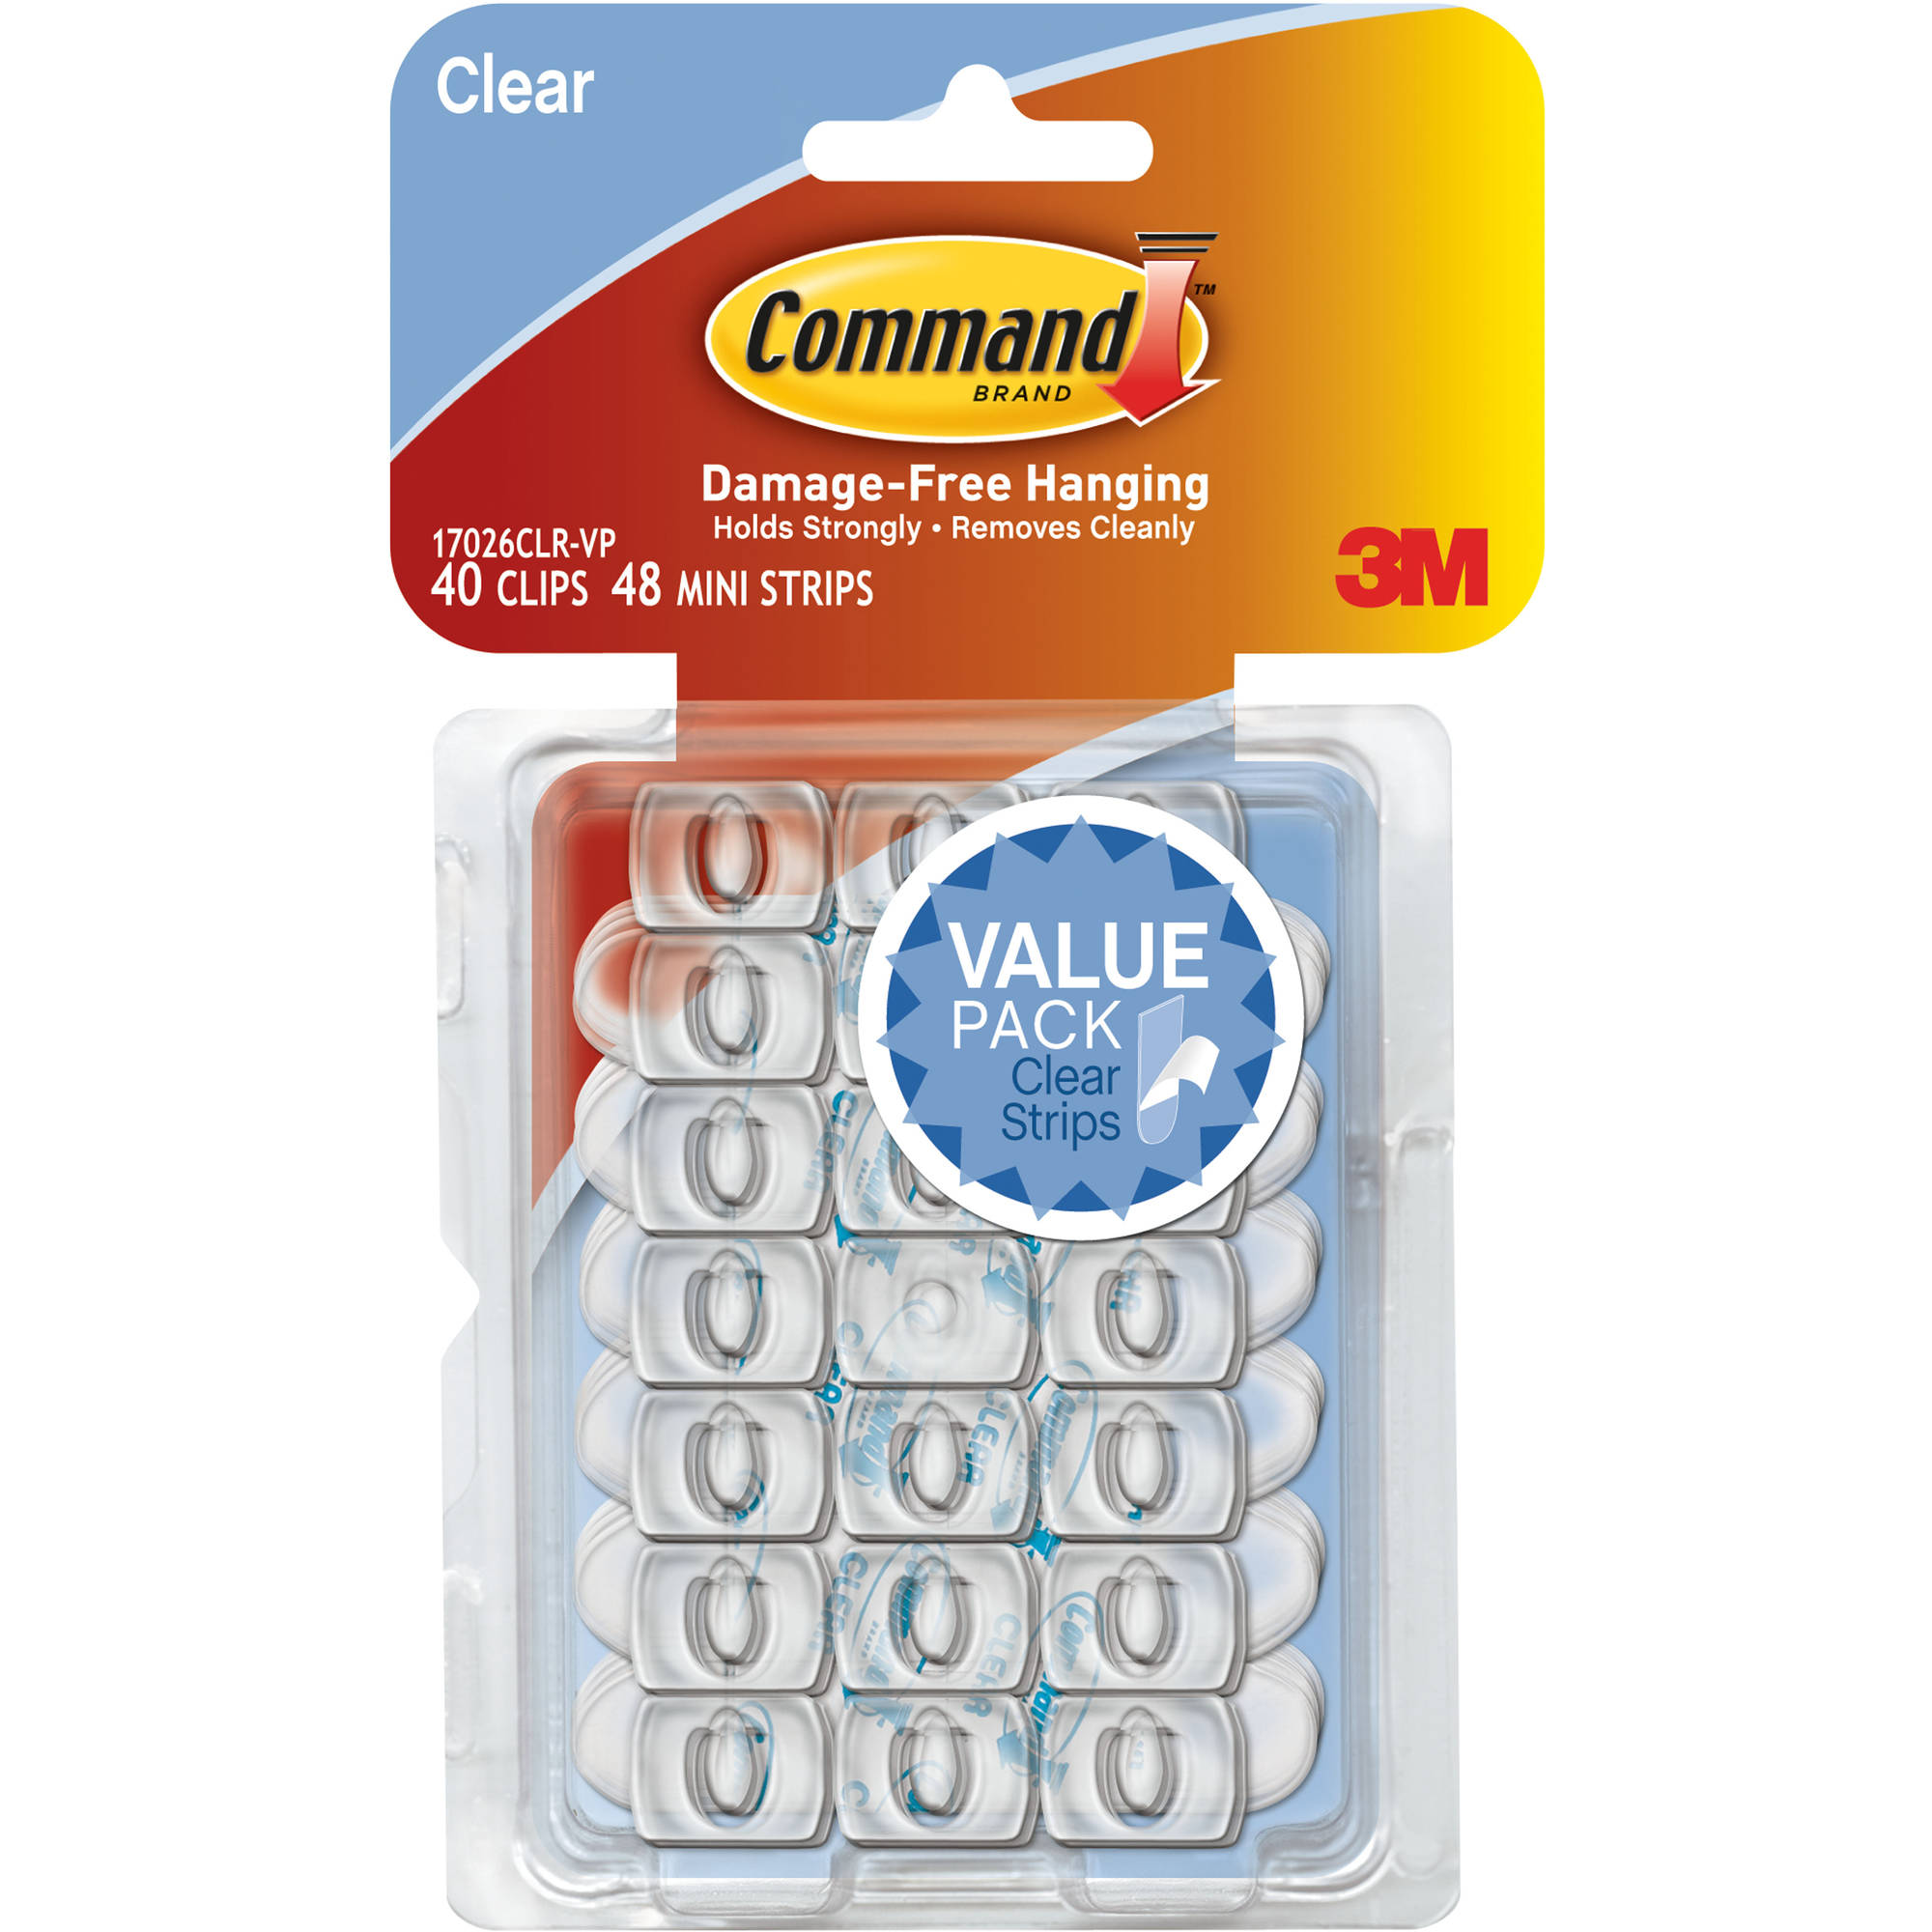 Command Decorating Clips Value Pack, Clear, 40 Clips, 48 Strips/Pack